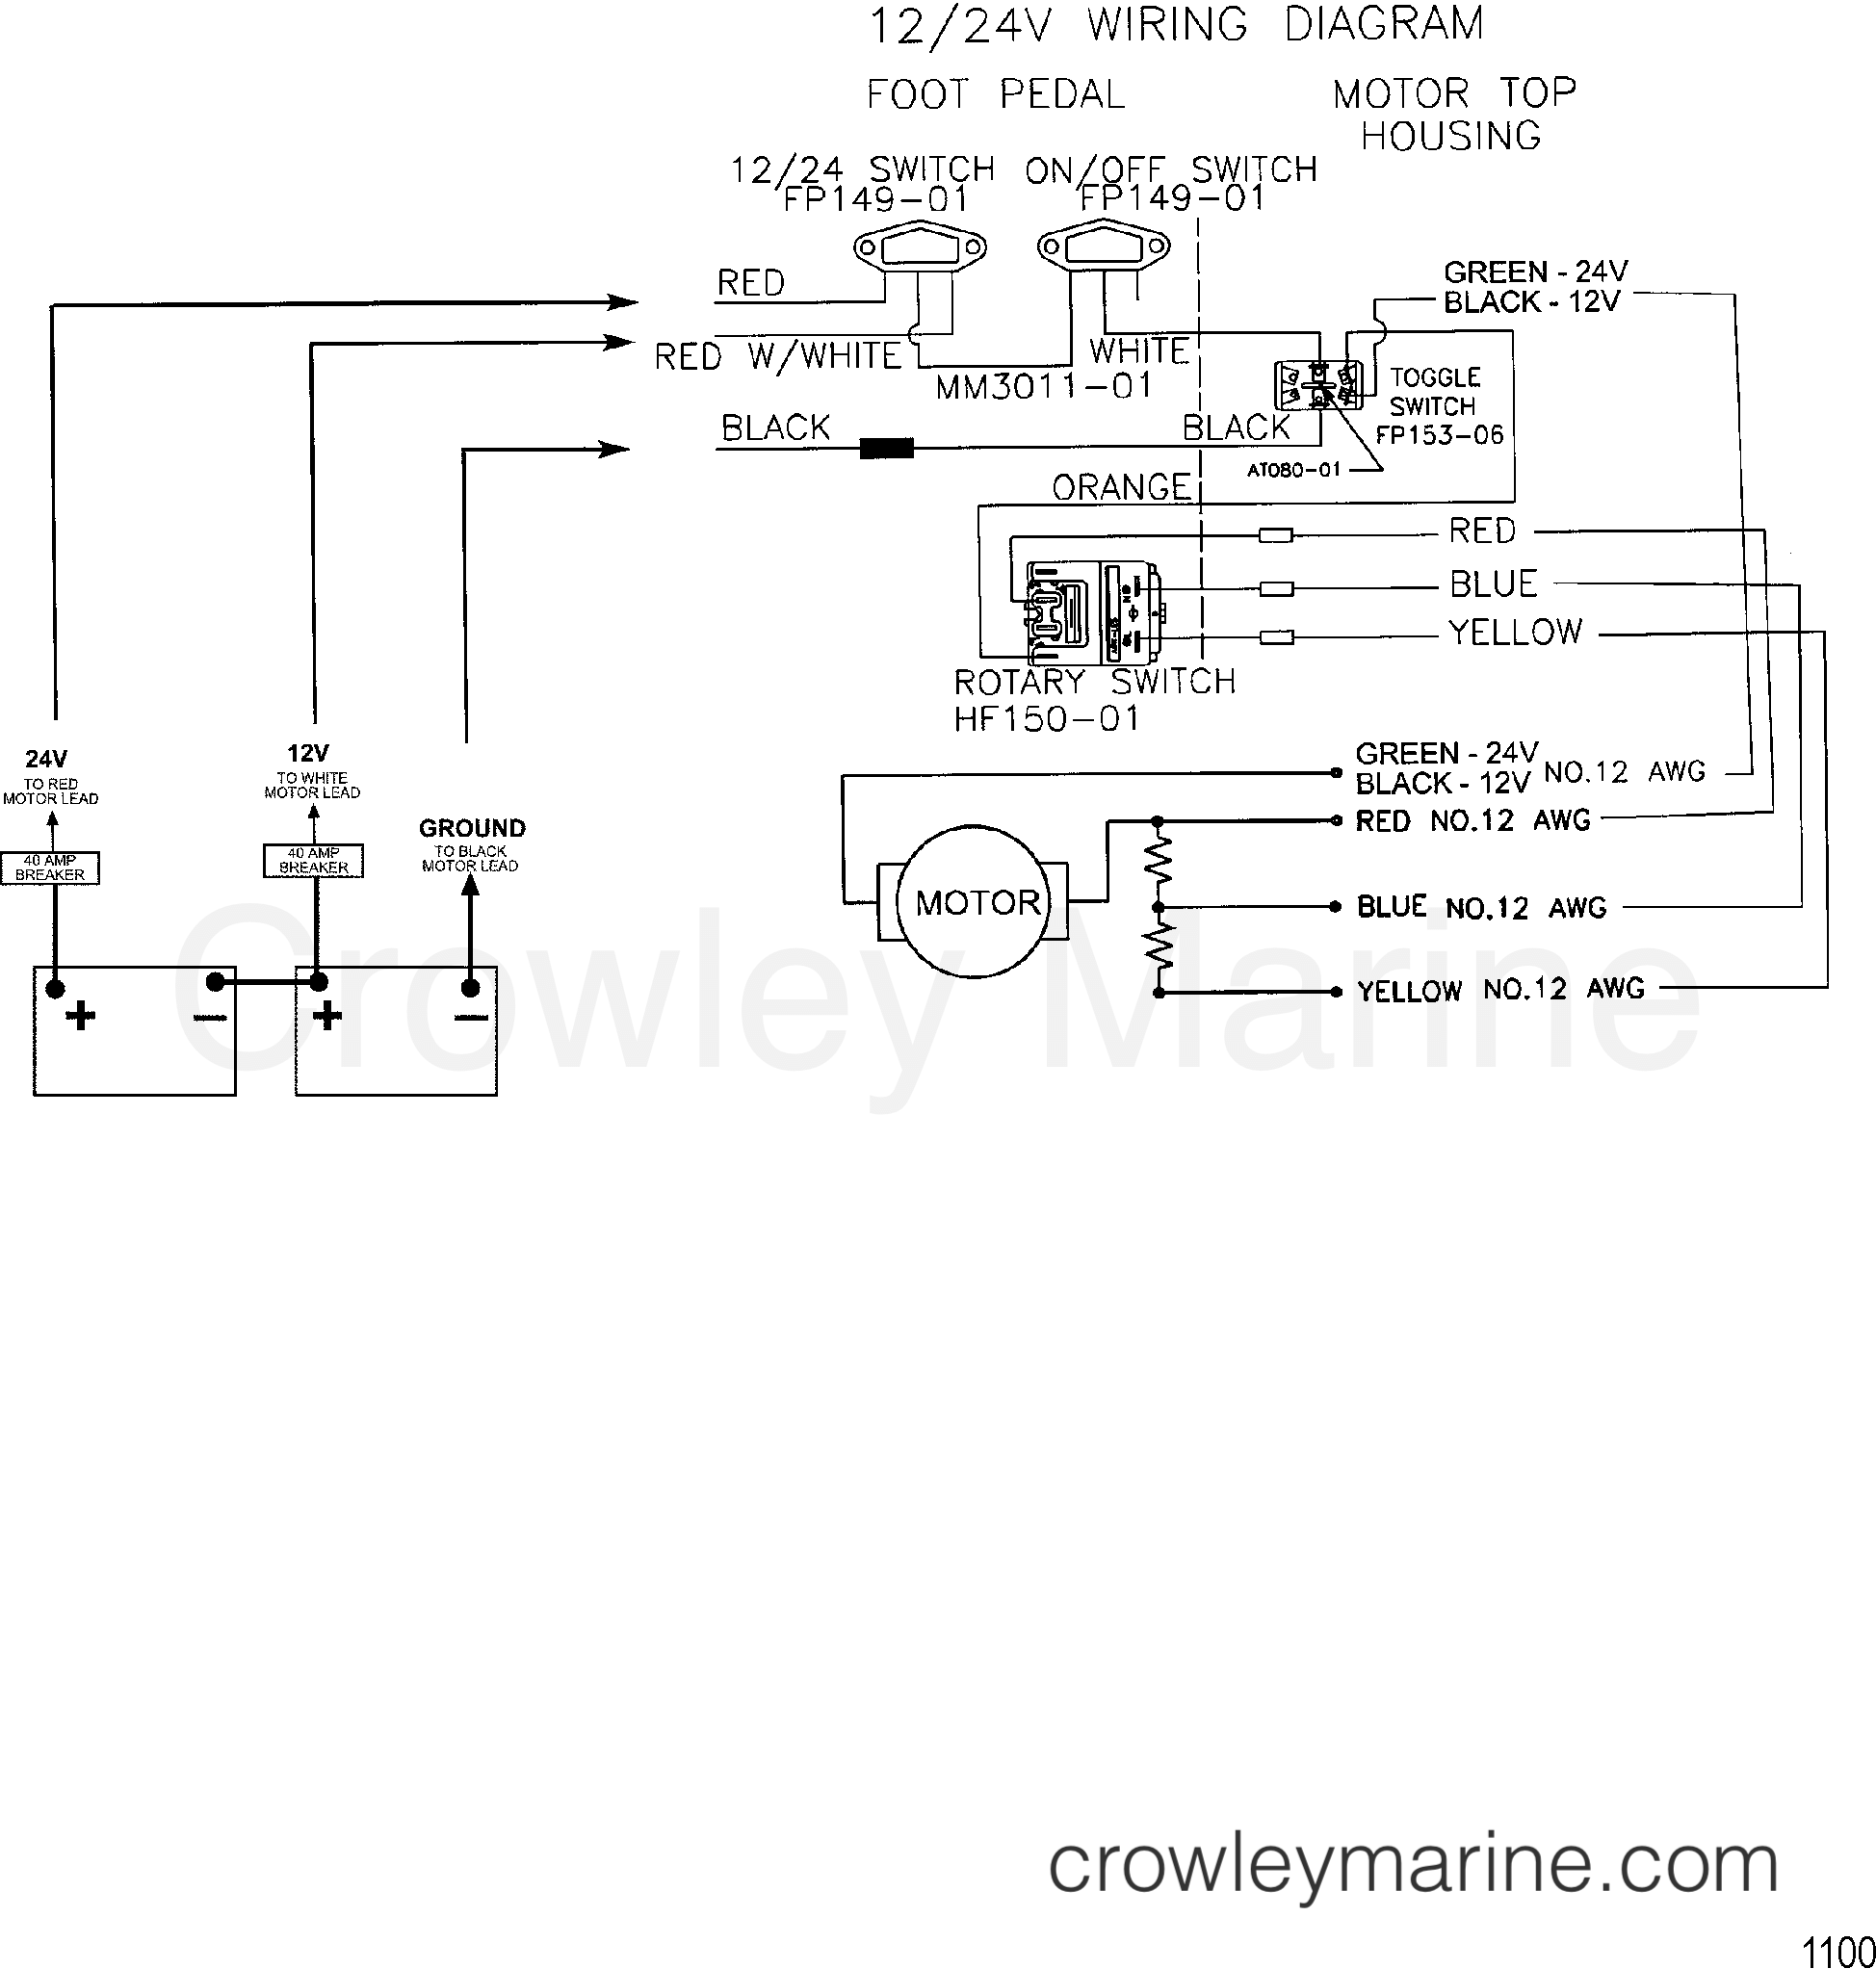 motorguide 24v wiring diagram motorguide image wire diagram model 667 24 volt 1999 motorguide 12 24v on motorguide 24v wiring diagram